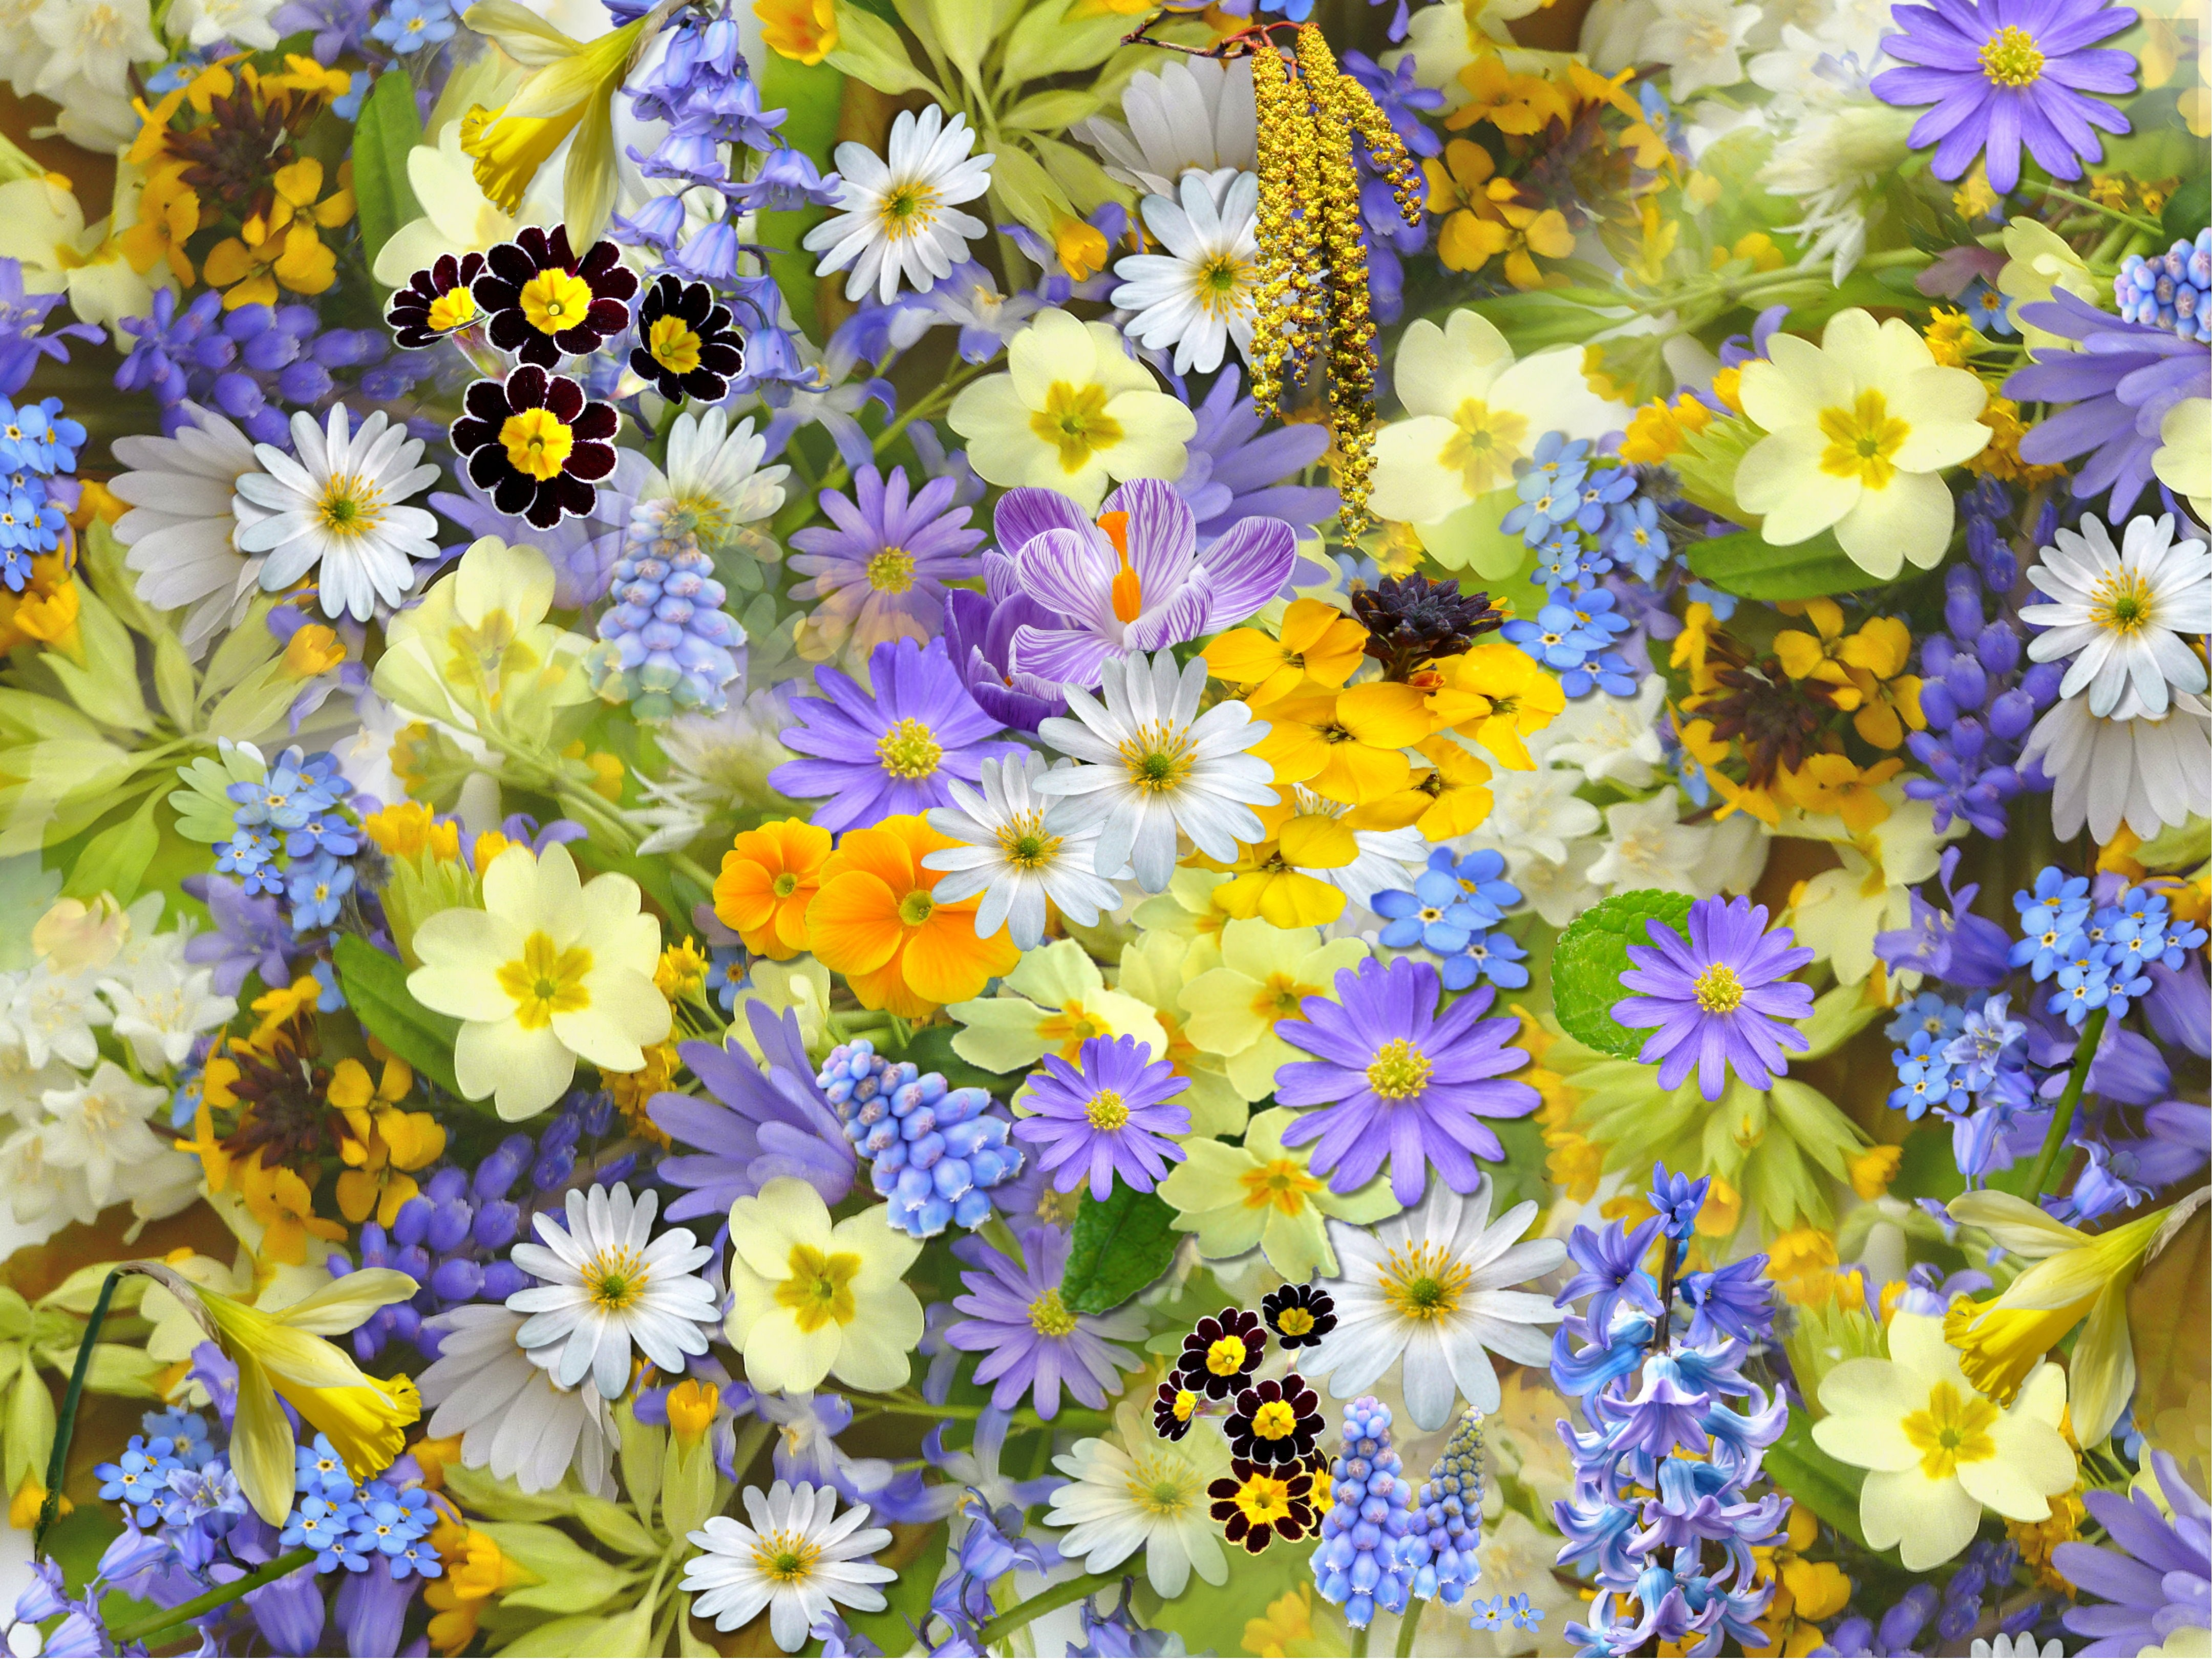 Bed of Flowers · Free Stock Photo